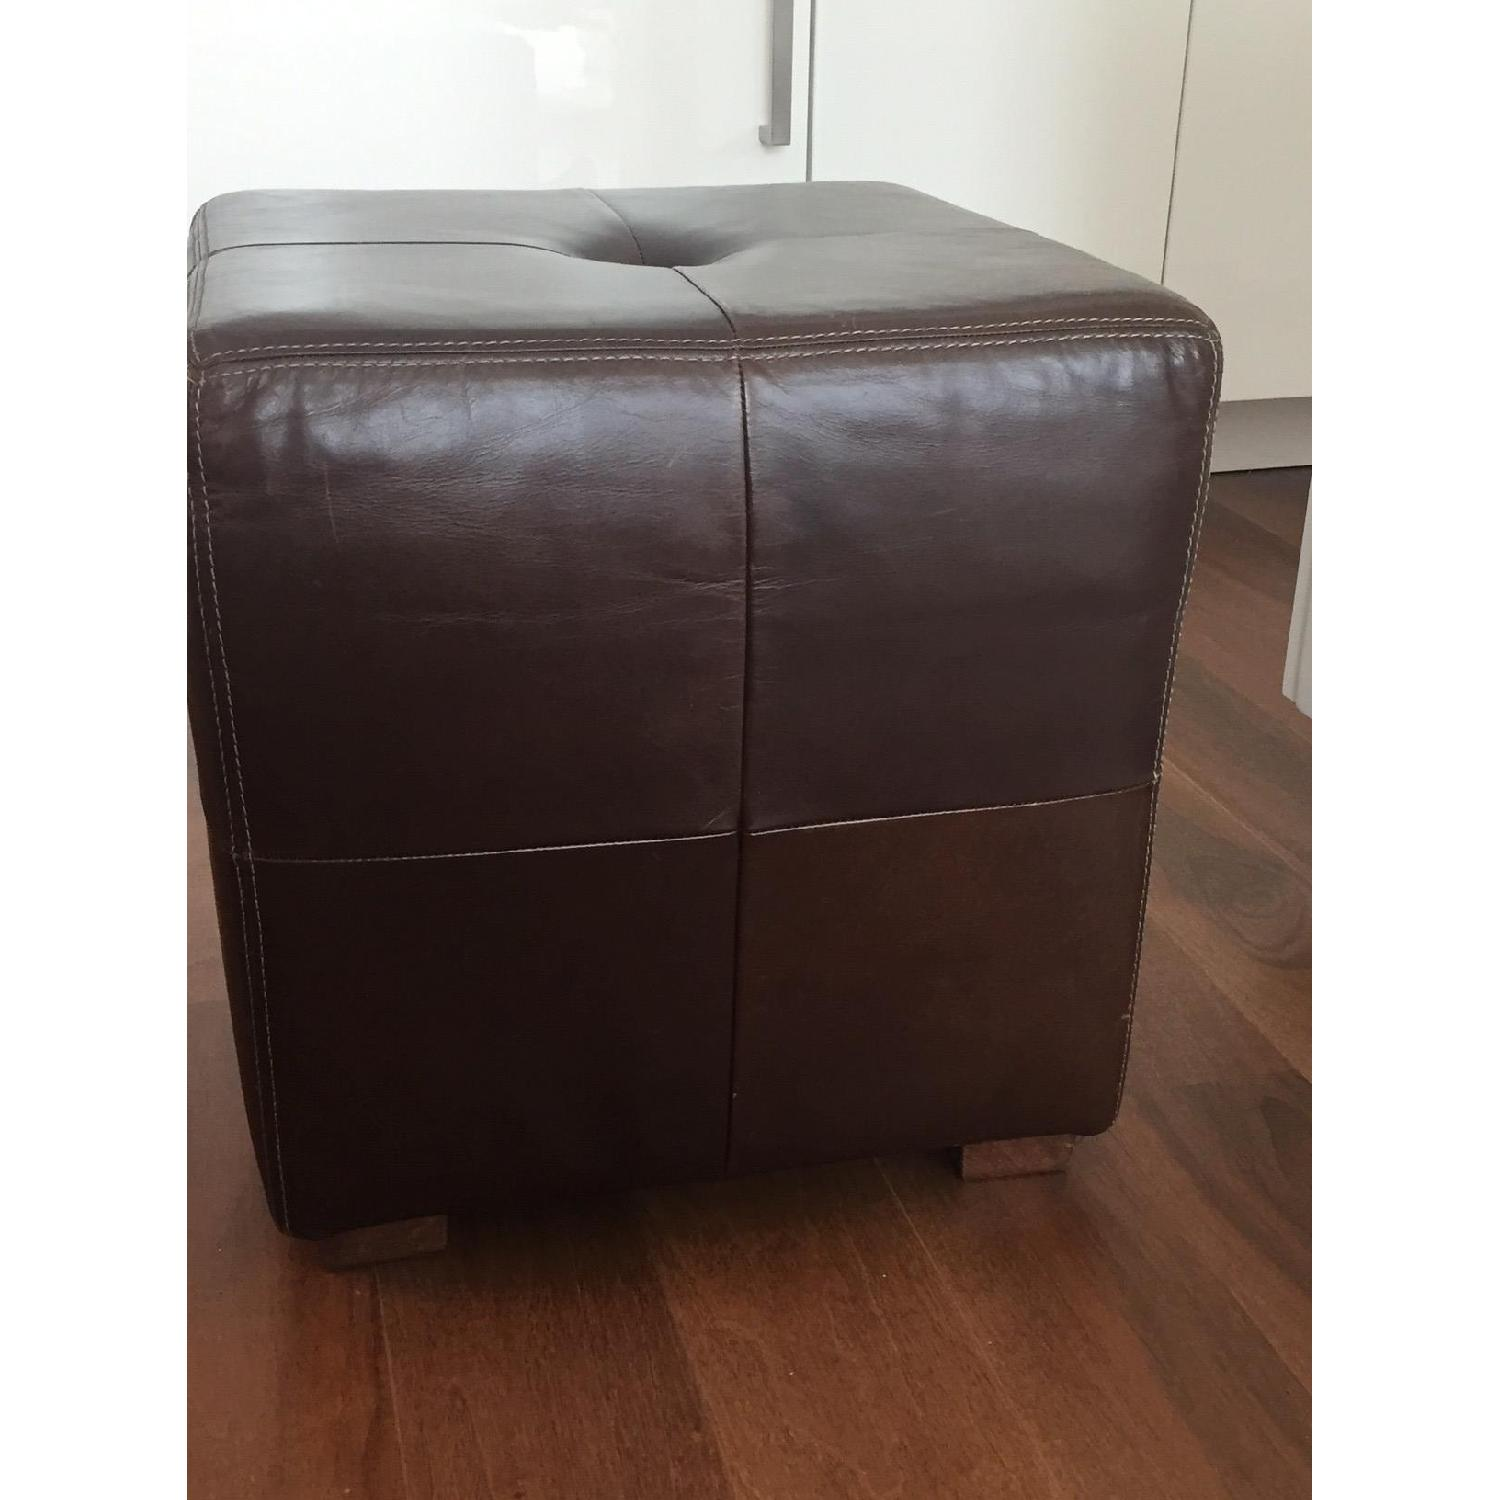 Pottery Barn Leather Square Ottoman - image-4